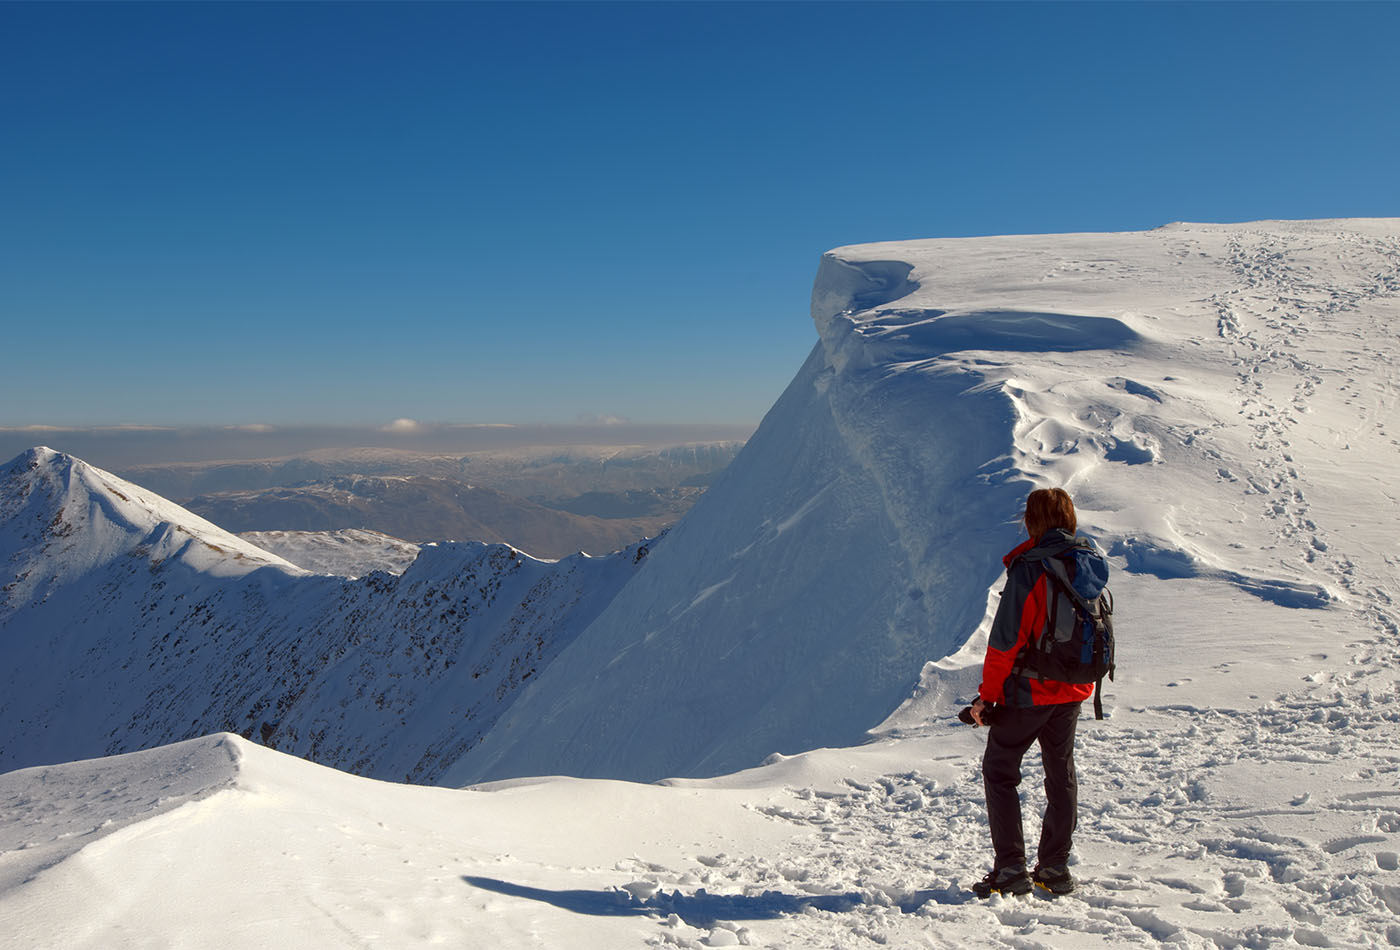 Rear view of female mountaineer on snowy summit of Helvellyn mountains in Winter, Lake District National Park, Cumbria, England.